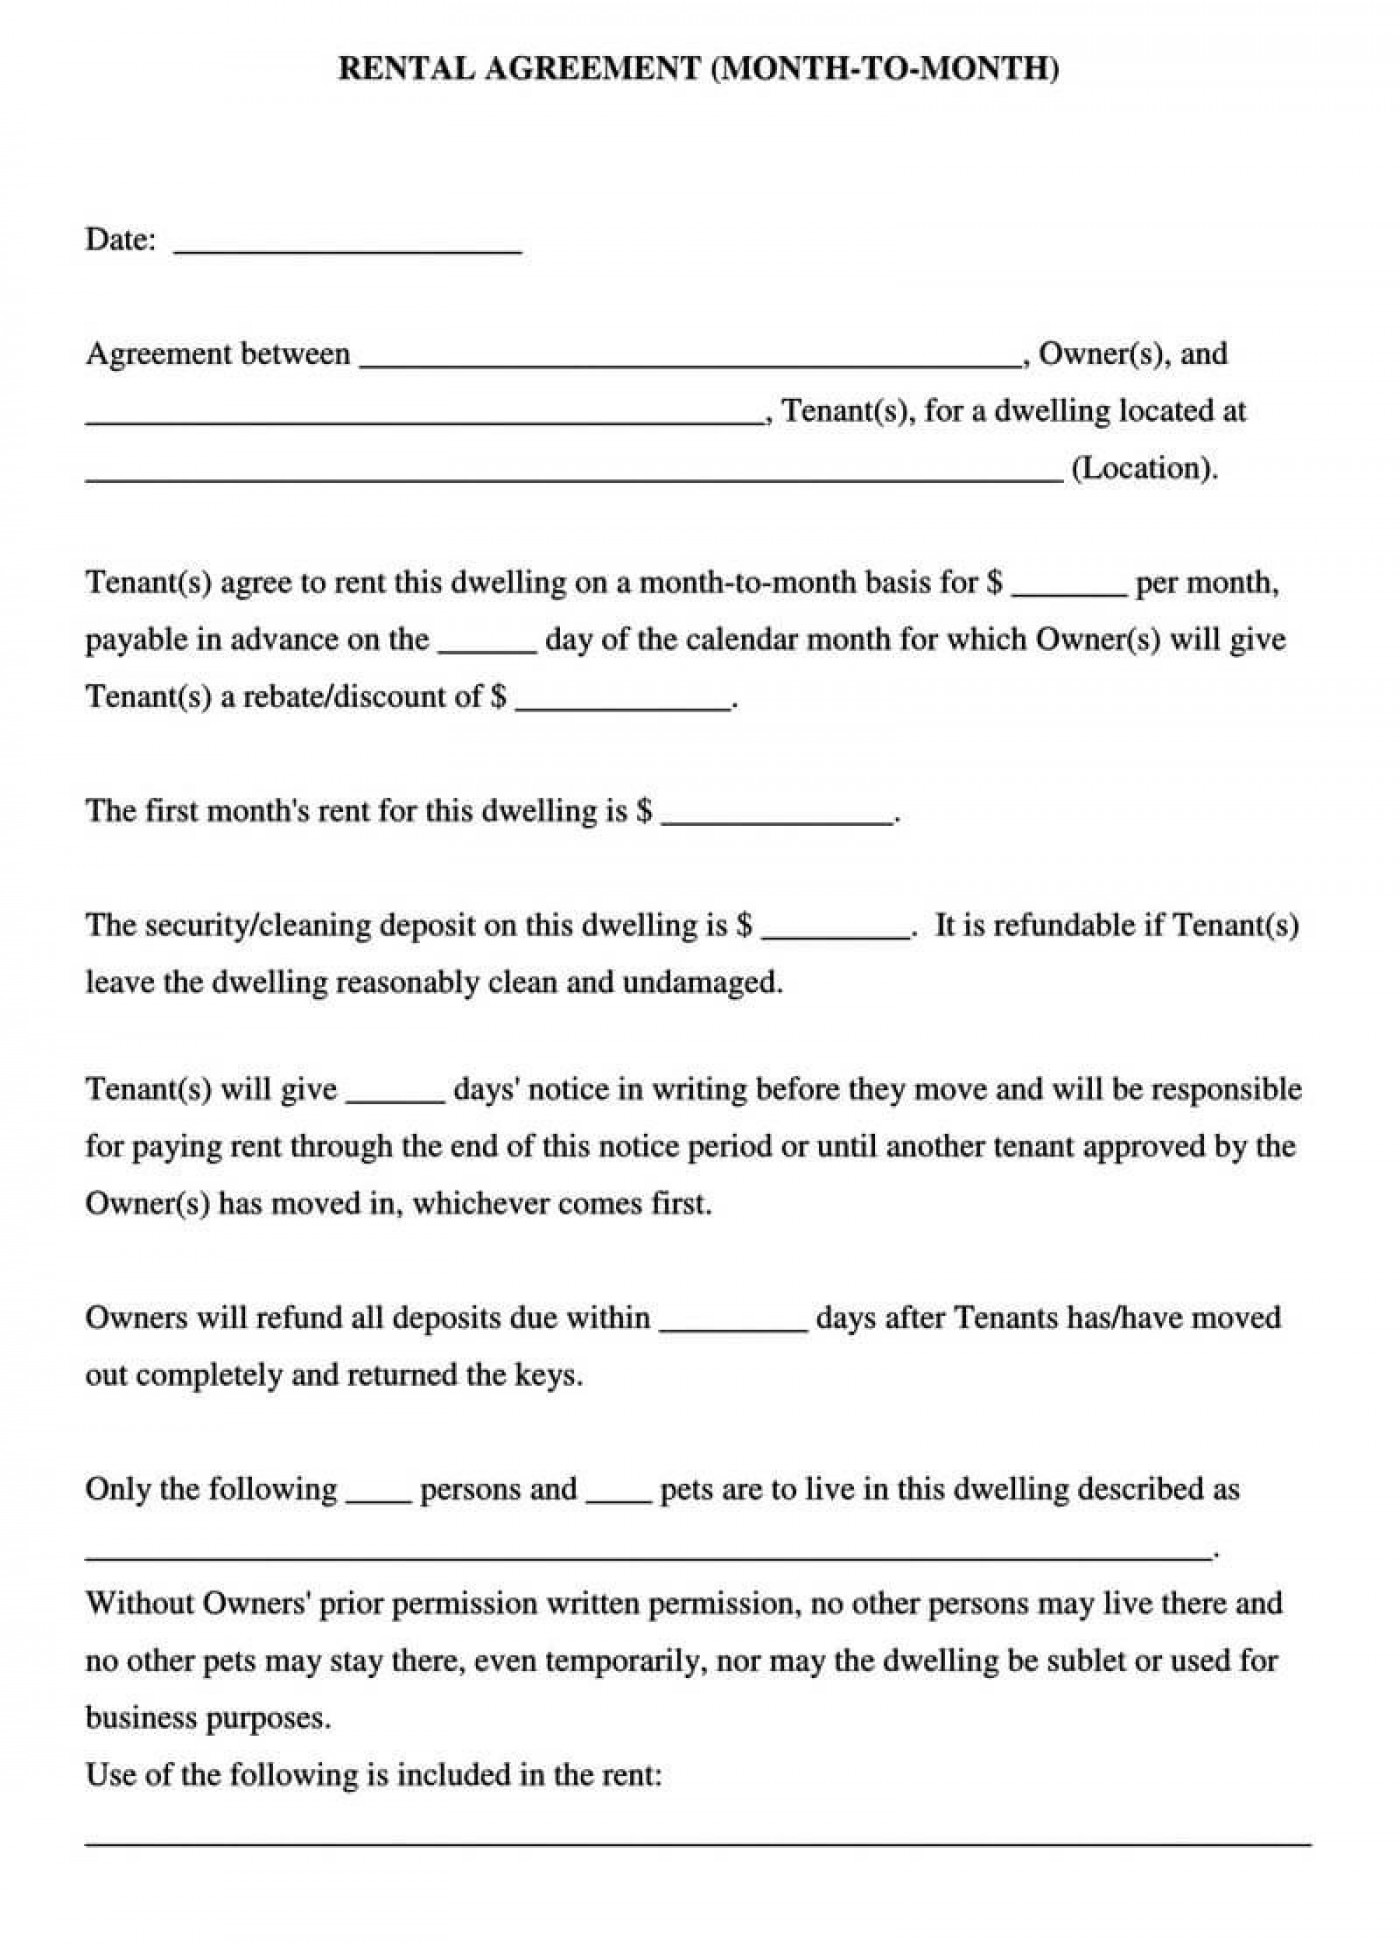 007 Shocking Template For Lease Agreement Free Photo  Printable Room Rental Commercial Uk Florida1400